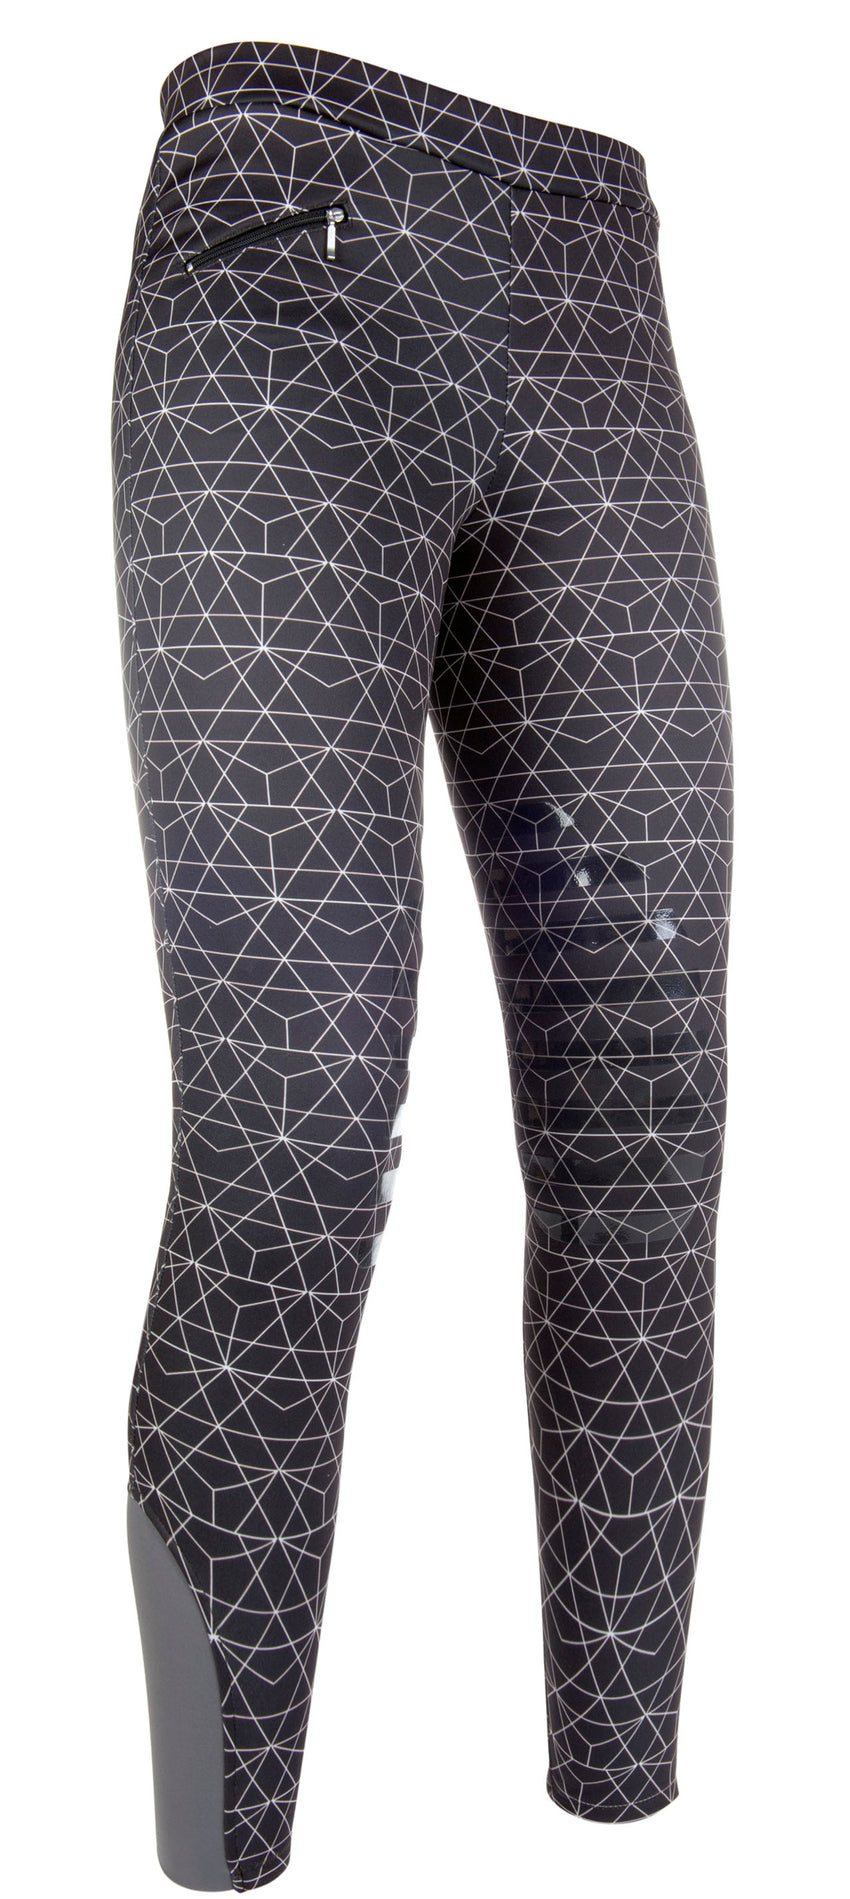 Winter Riding Tights in fun colour